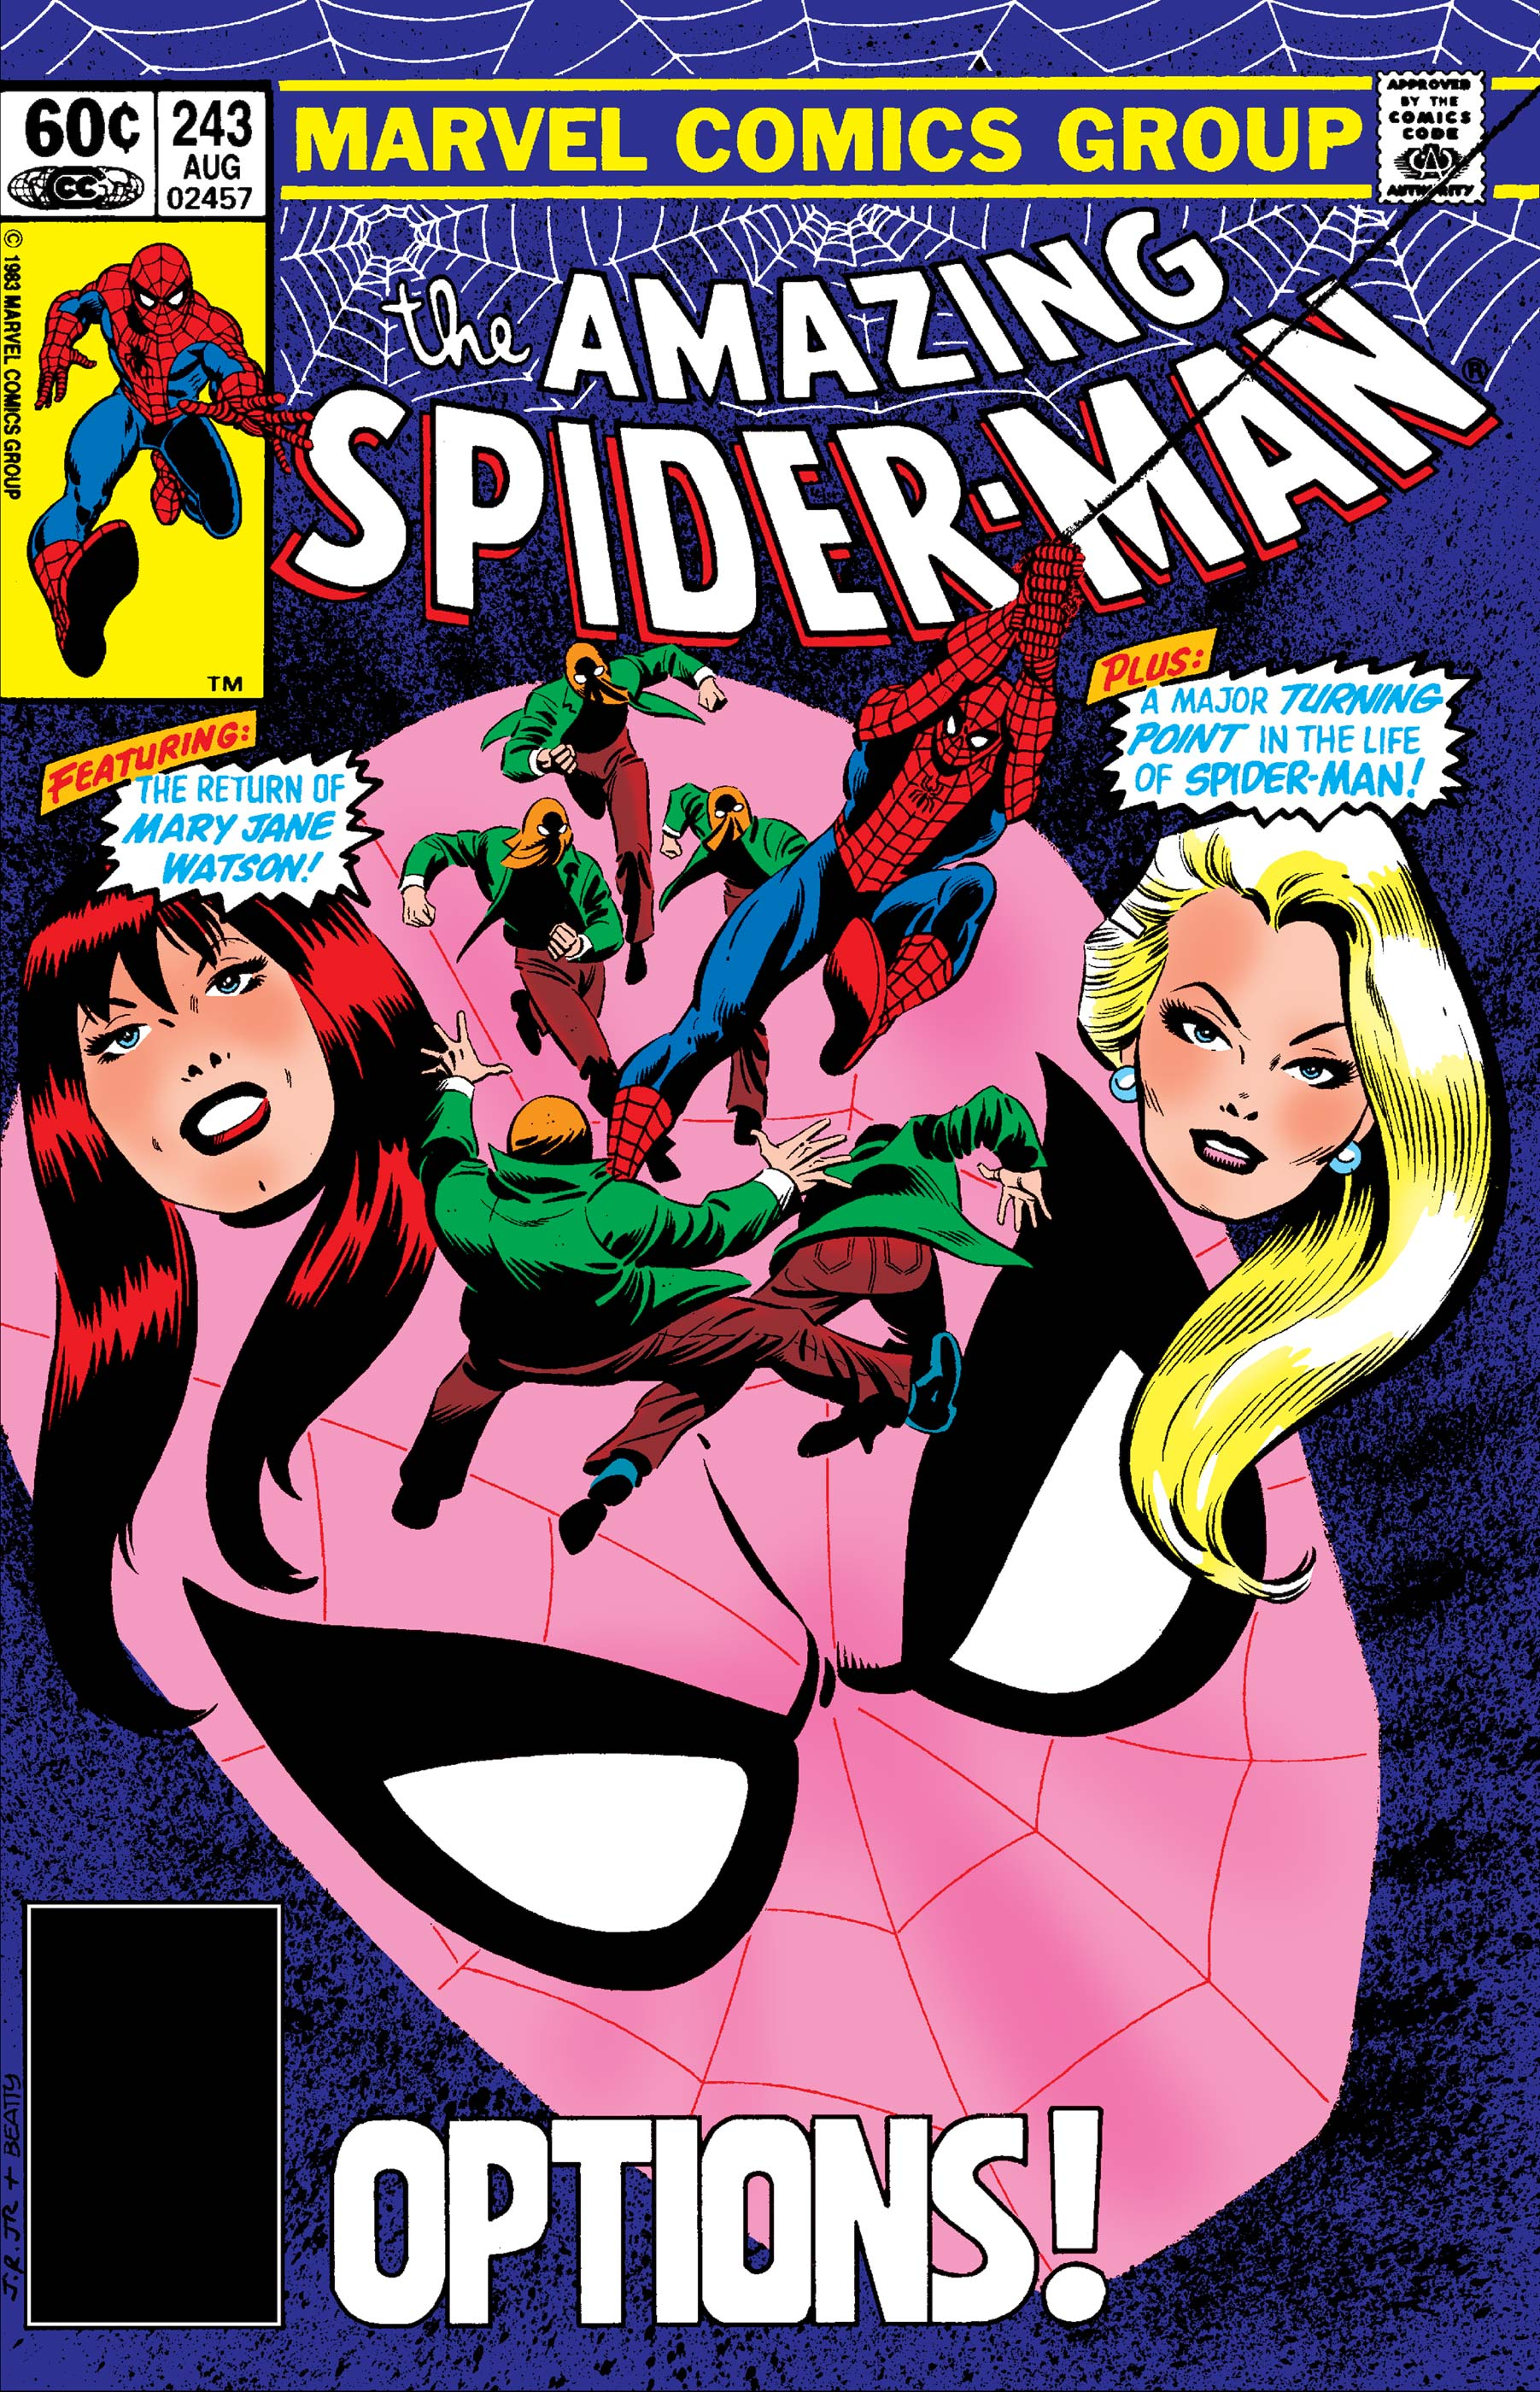 The Amazing Spider-Man (1963) #243